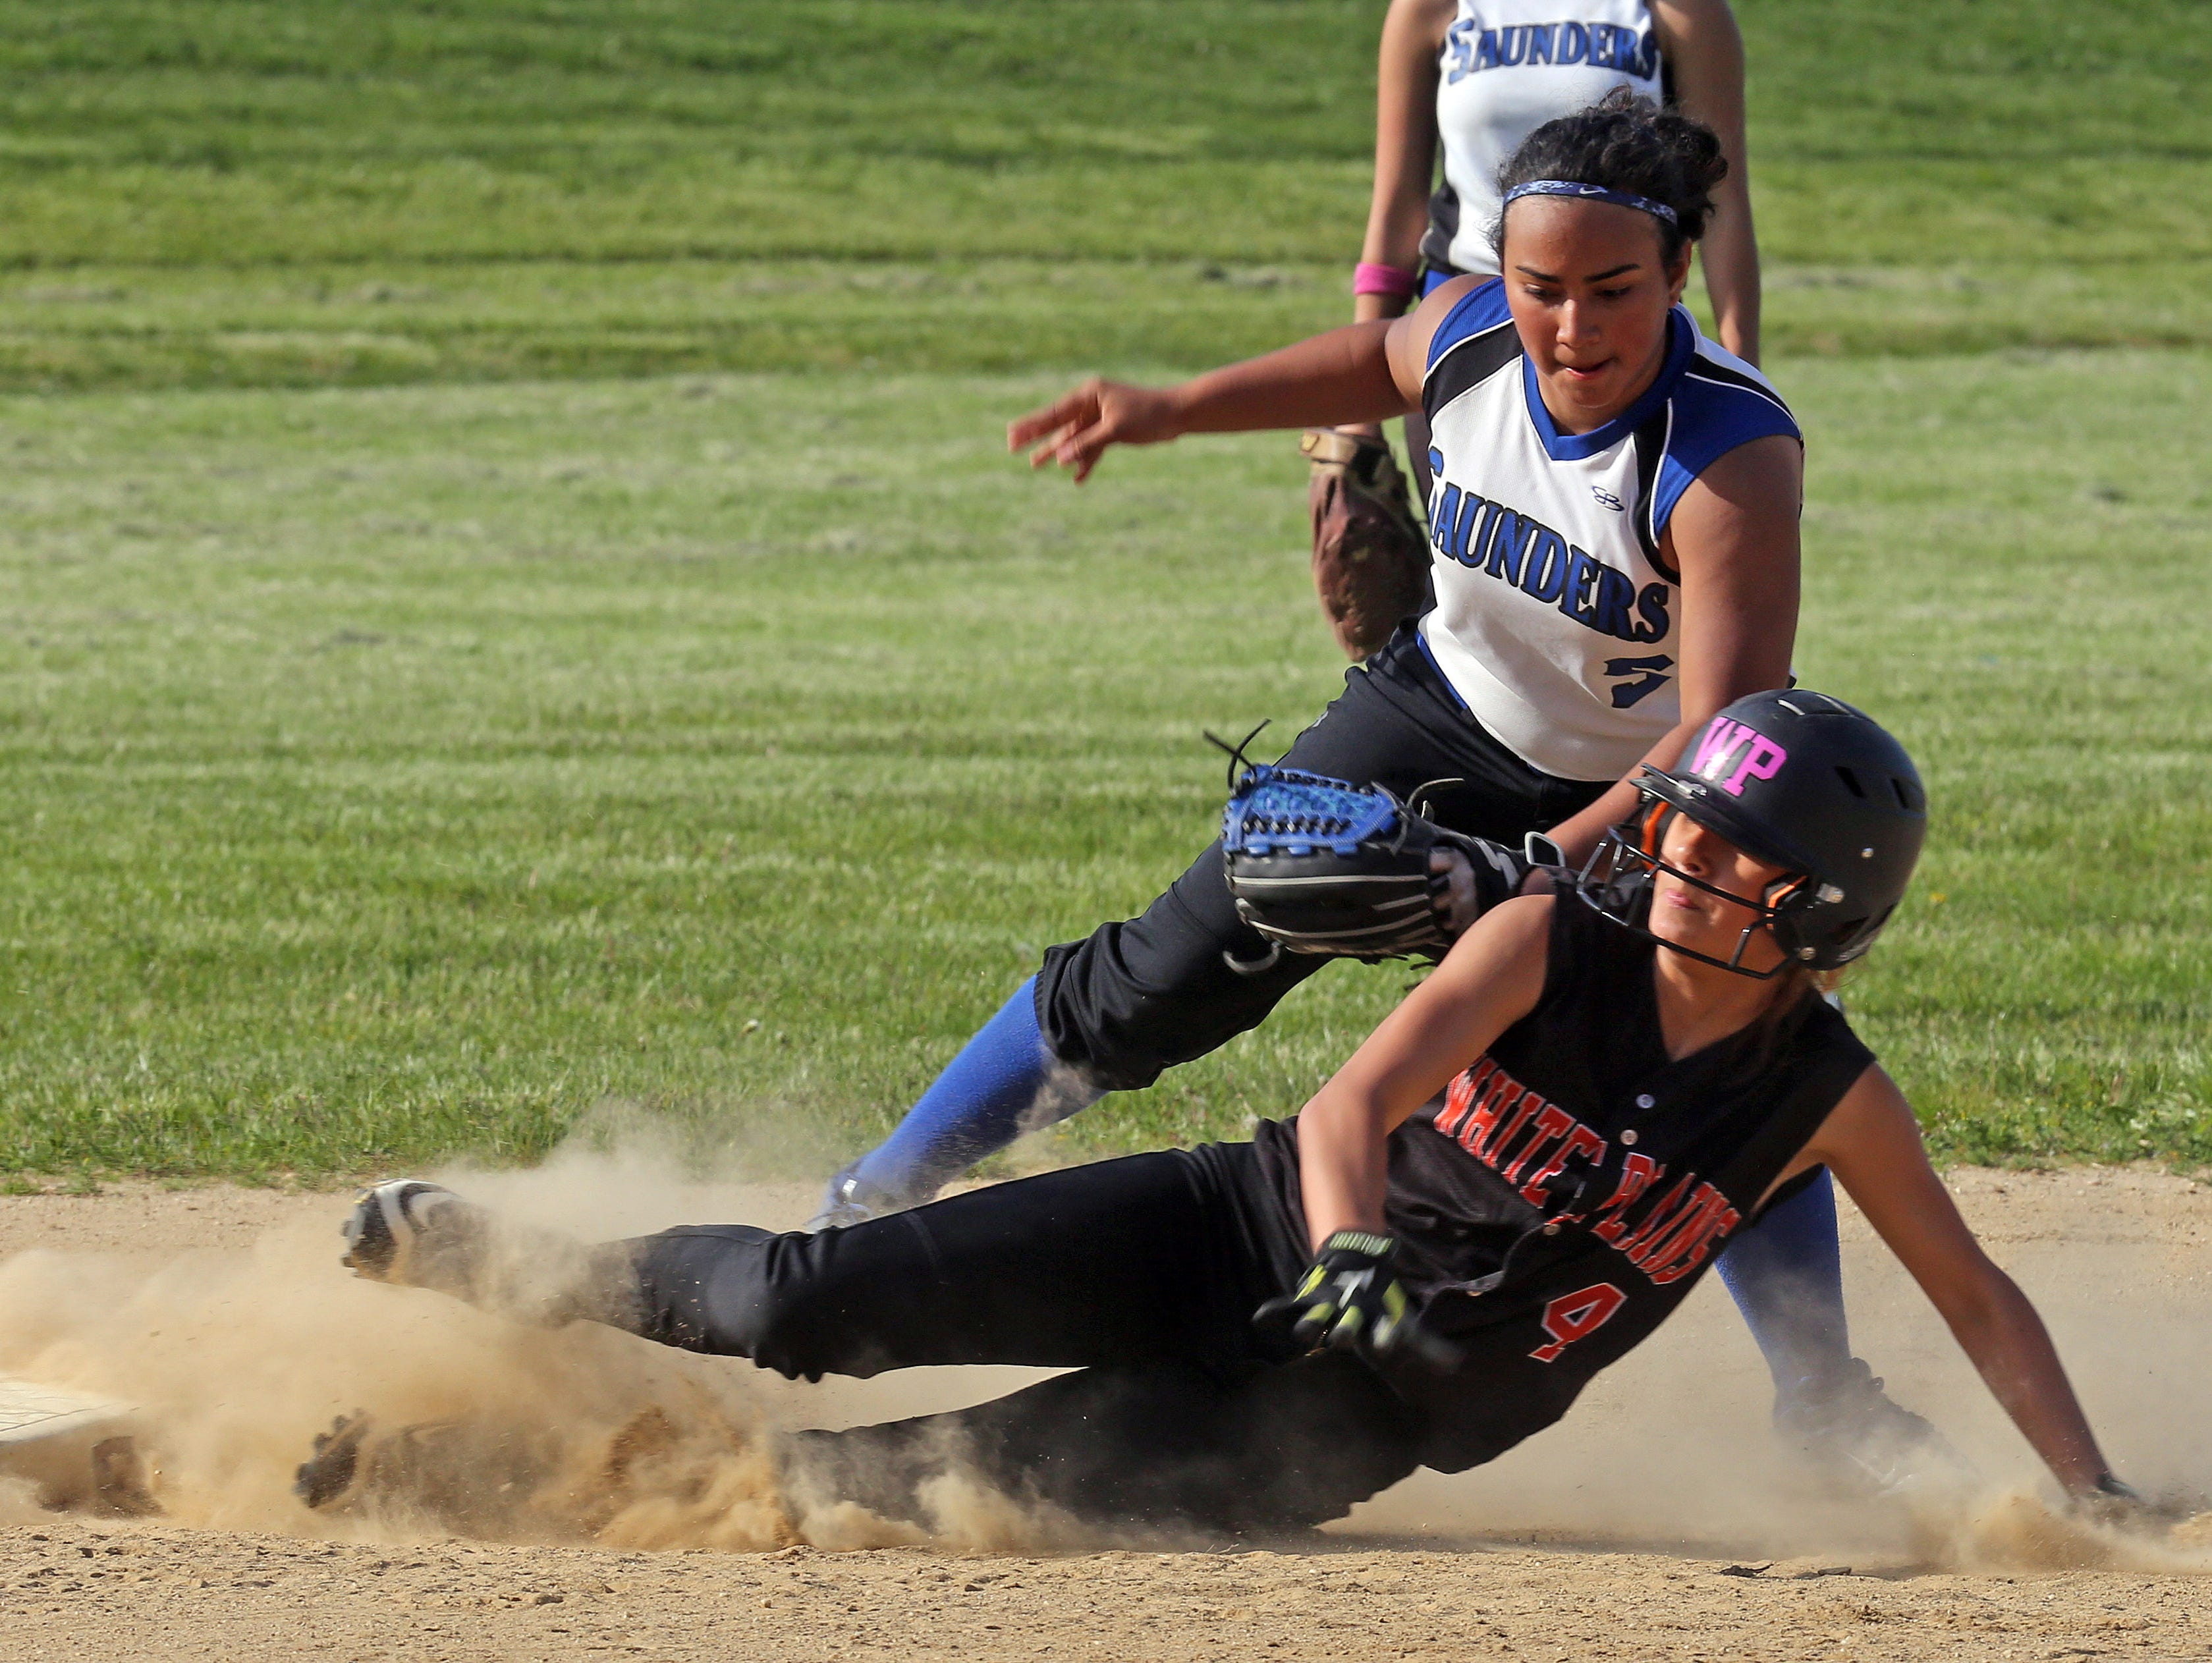 Stephanie Vega (19) of Saunders tags out White Plains Samantha Mendez (4) at second base during Class AA first round playoff softball game at Saunders High School in Yonkers on May 20, 2016.